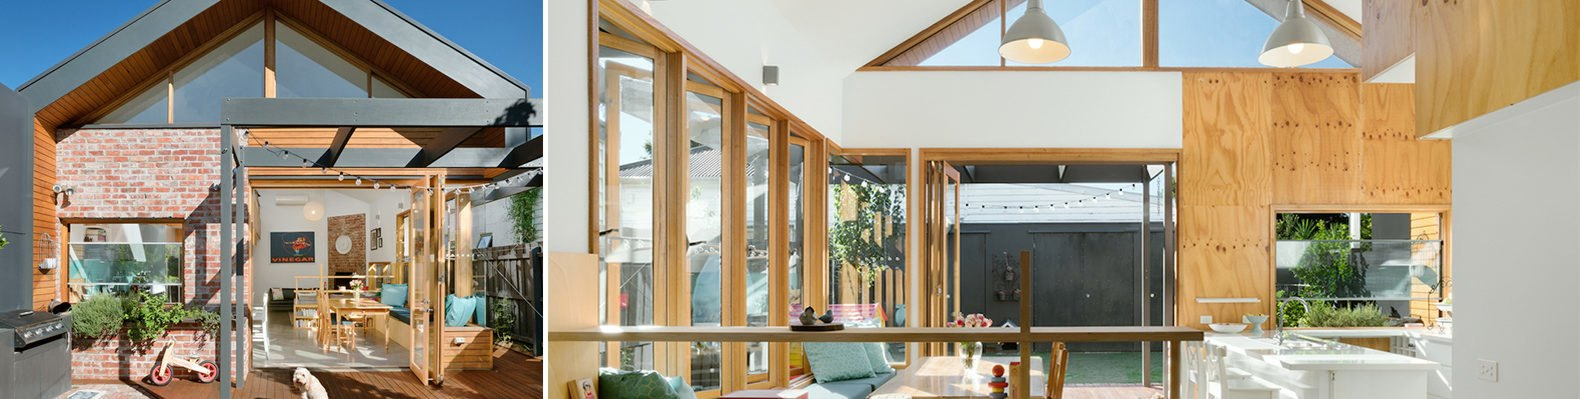 Smart Home by Green Sheep Collective, Green Sheep Collective eco-friendly, eco-friendly housing Melbourne, eco-friendly affordable housing, Smart Home in Melbourne, Smart Home in Australia, green renovation in Melbourne,